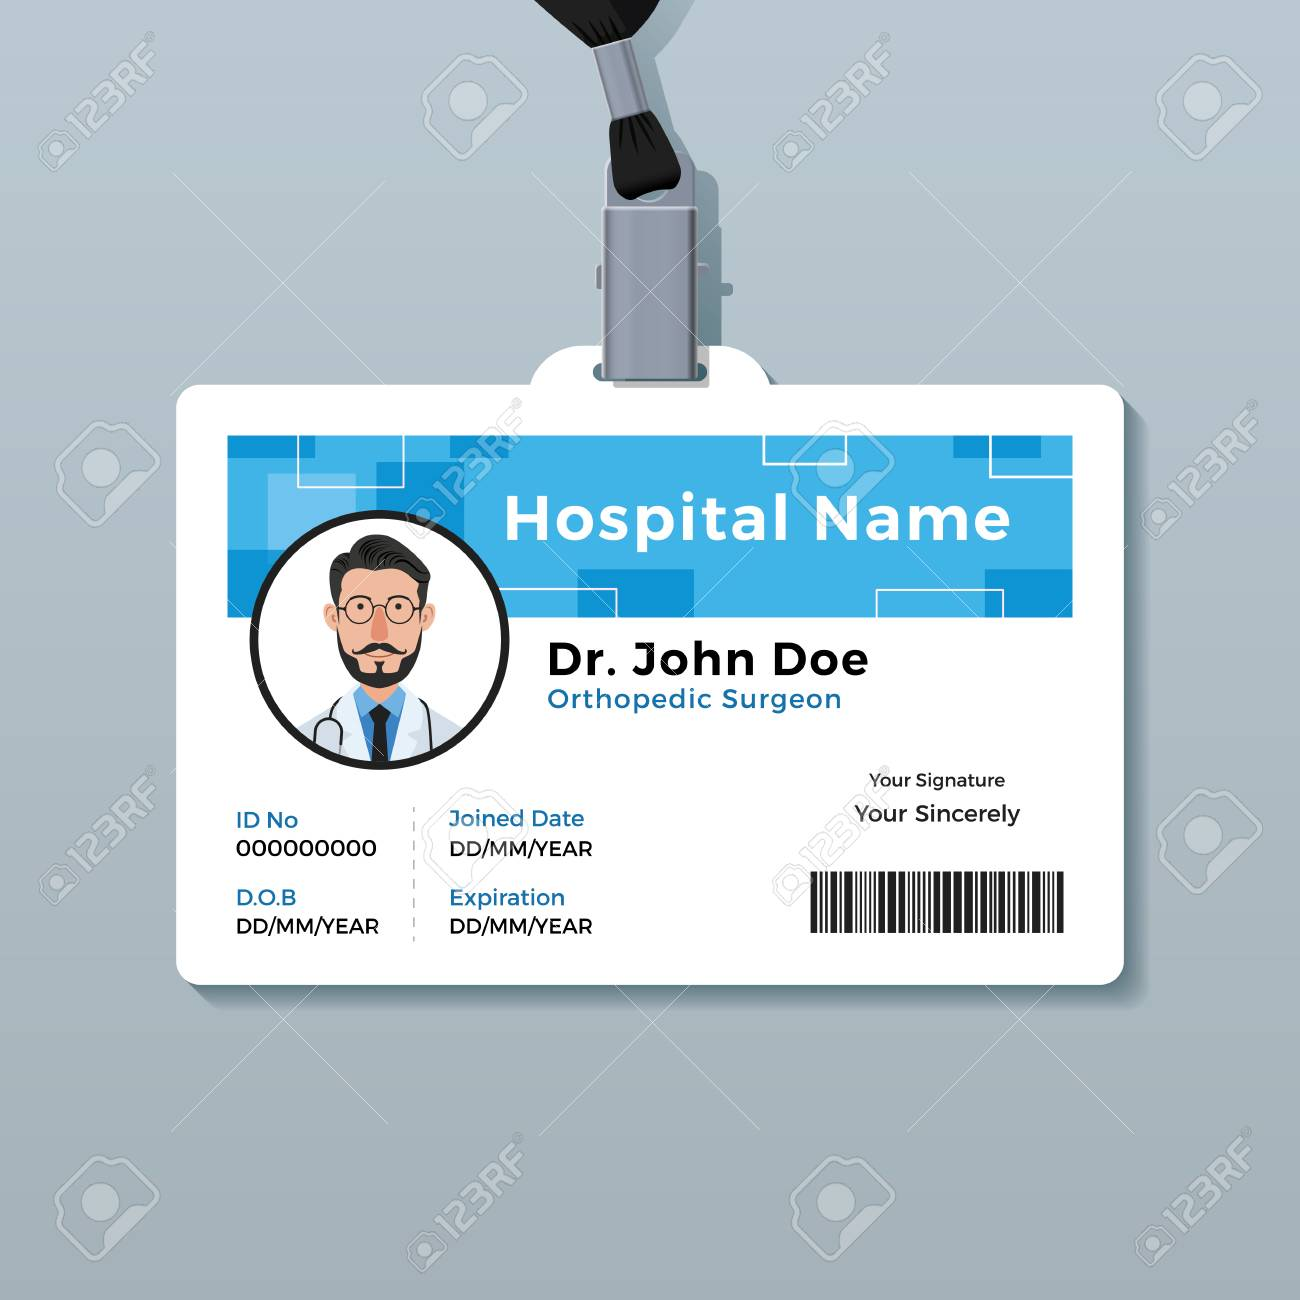 Doctor Id Badge Medical Identity Card Template Royalty Free Cliparts Vectors And Stock Illustration Image 123983456